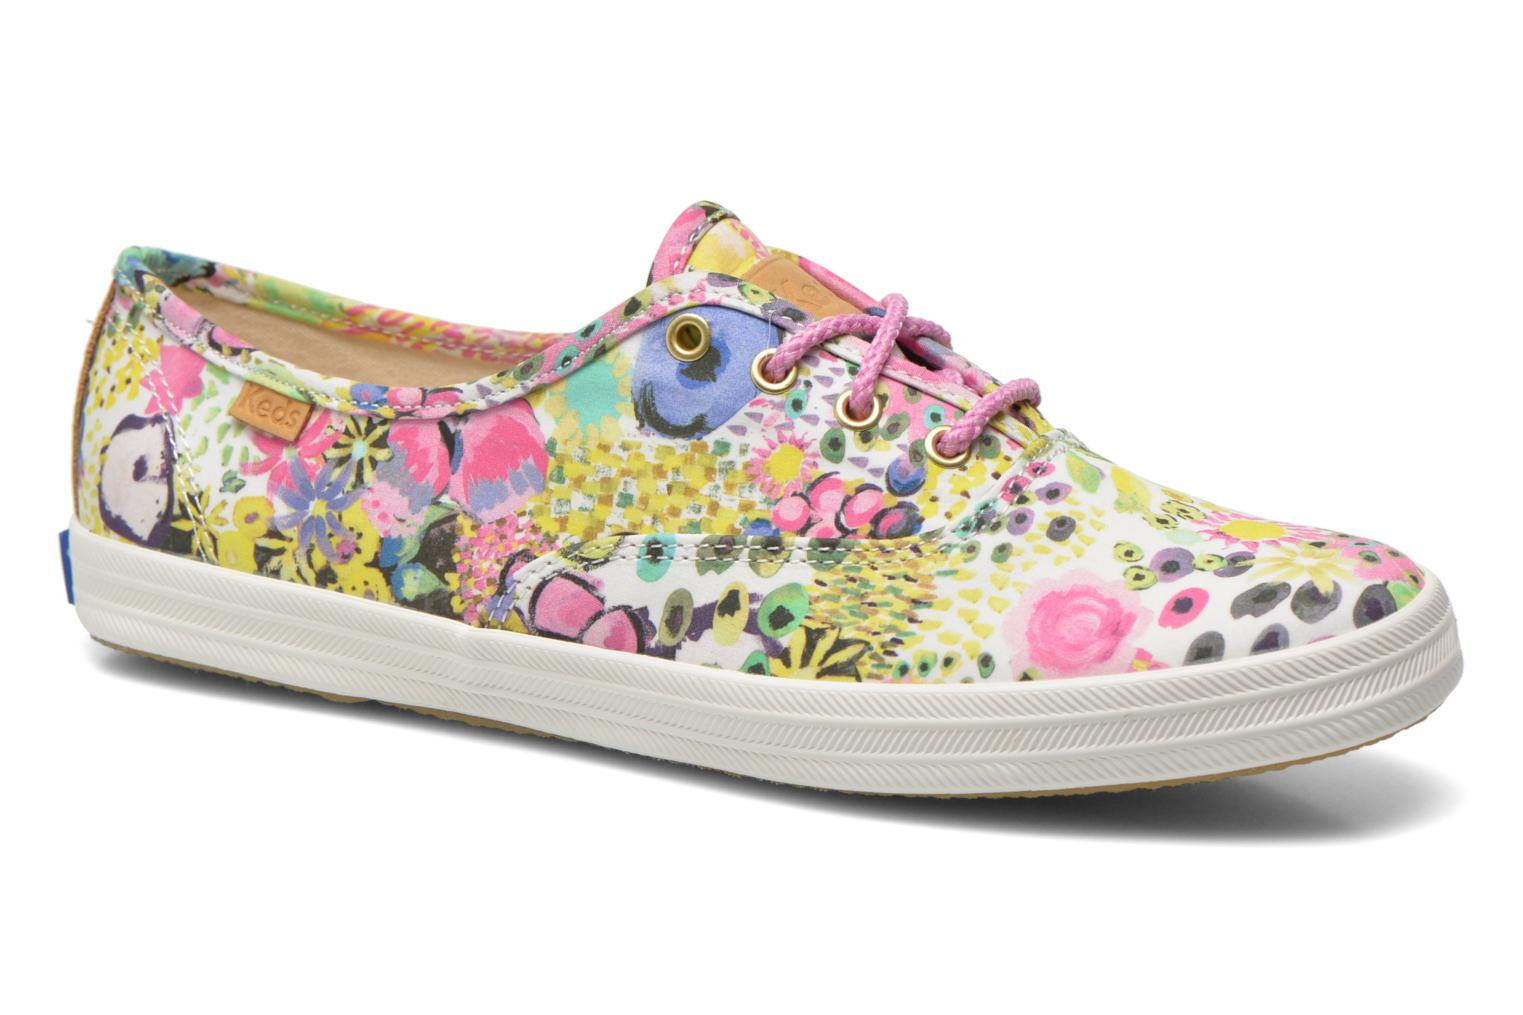 Marques Chaussure femme Keds femme Ch Liberty Floral pink multi